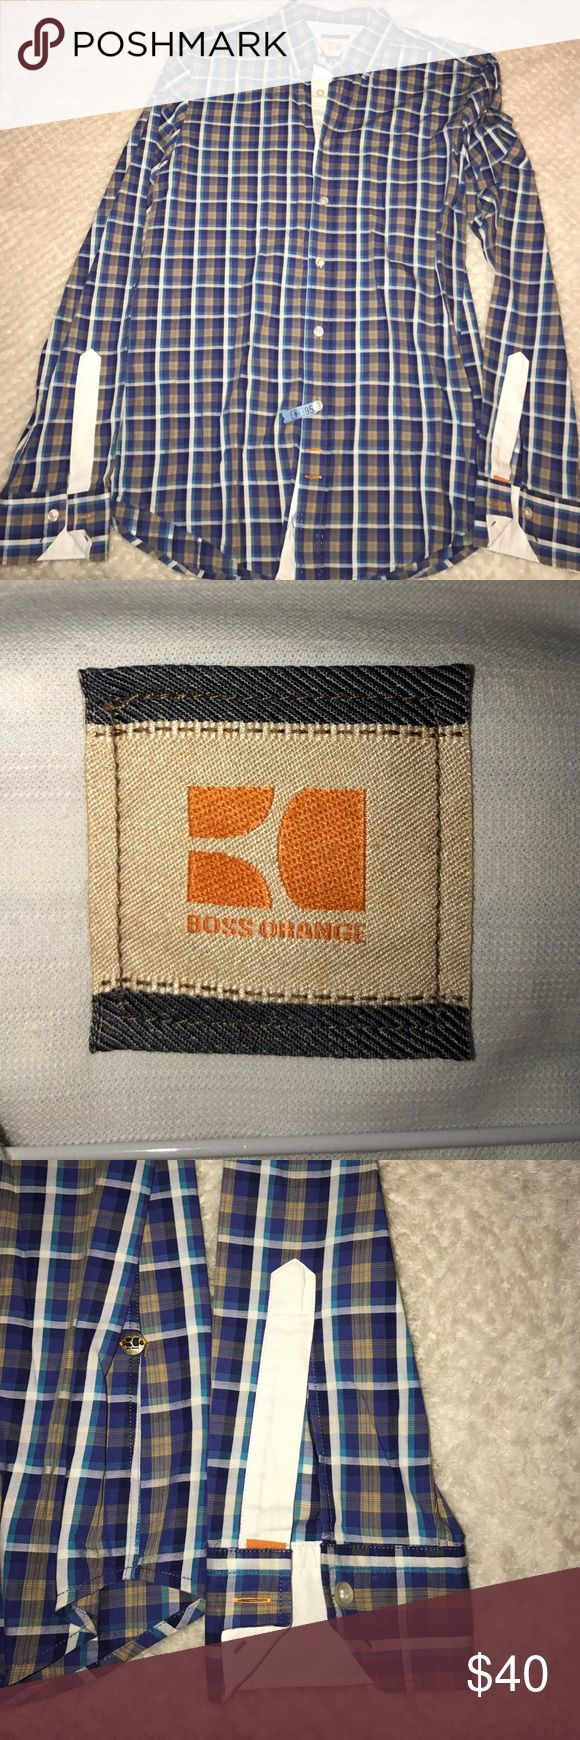 HUGO BOSS Orange Dress shirt button down sz M 100% Authentic BOSS Orange dress shirt Plaid pattern. Beautiful button down under a suit or alone. Can be worn during all seasons. Size M fits true to size. Have over 50 more Hugo Boss shirts to come. Stay tuned! ALL DRESS SHIRTS DRY CLEANED BEFORE SHIPMENT. Hugo Boss Shirts